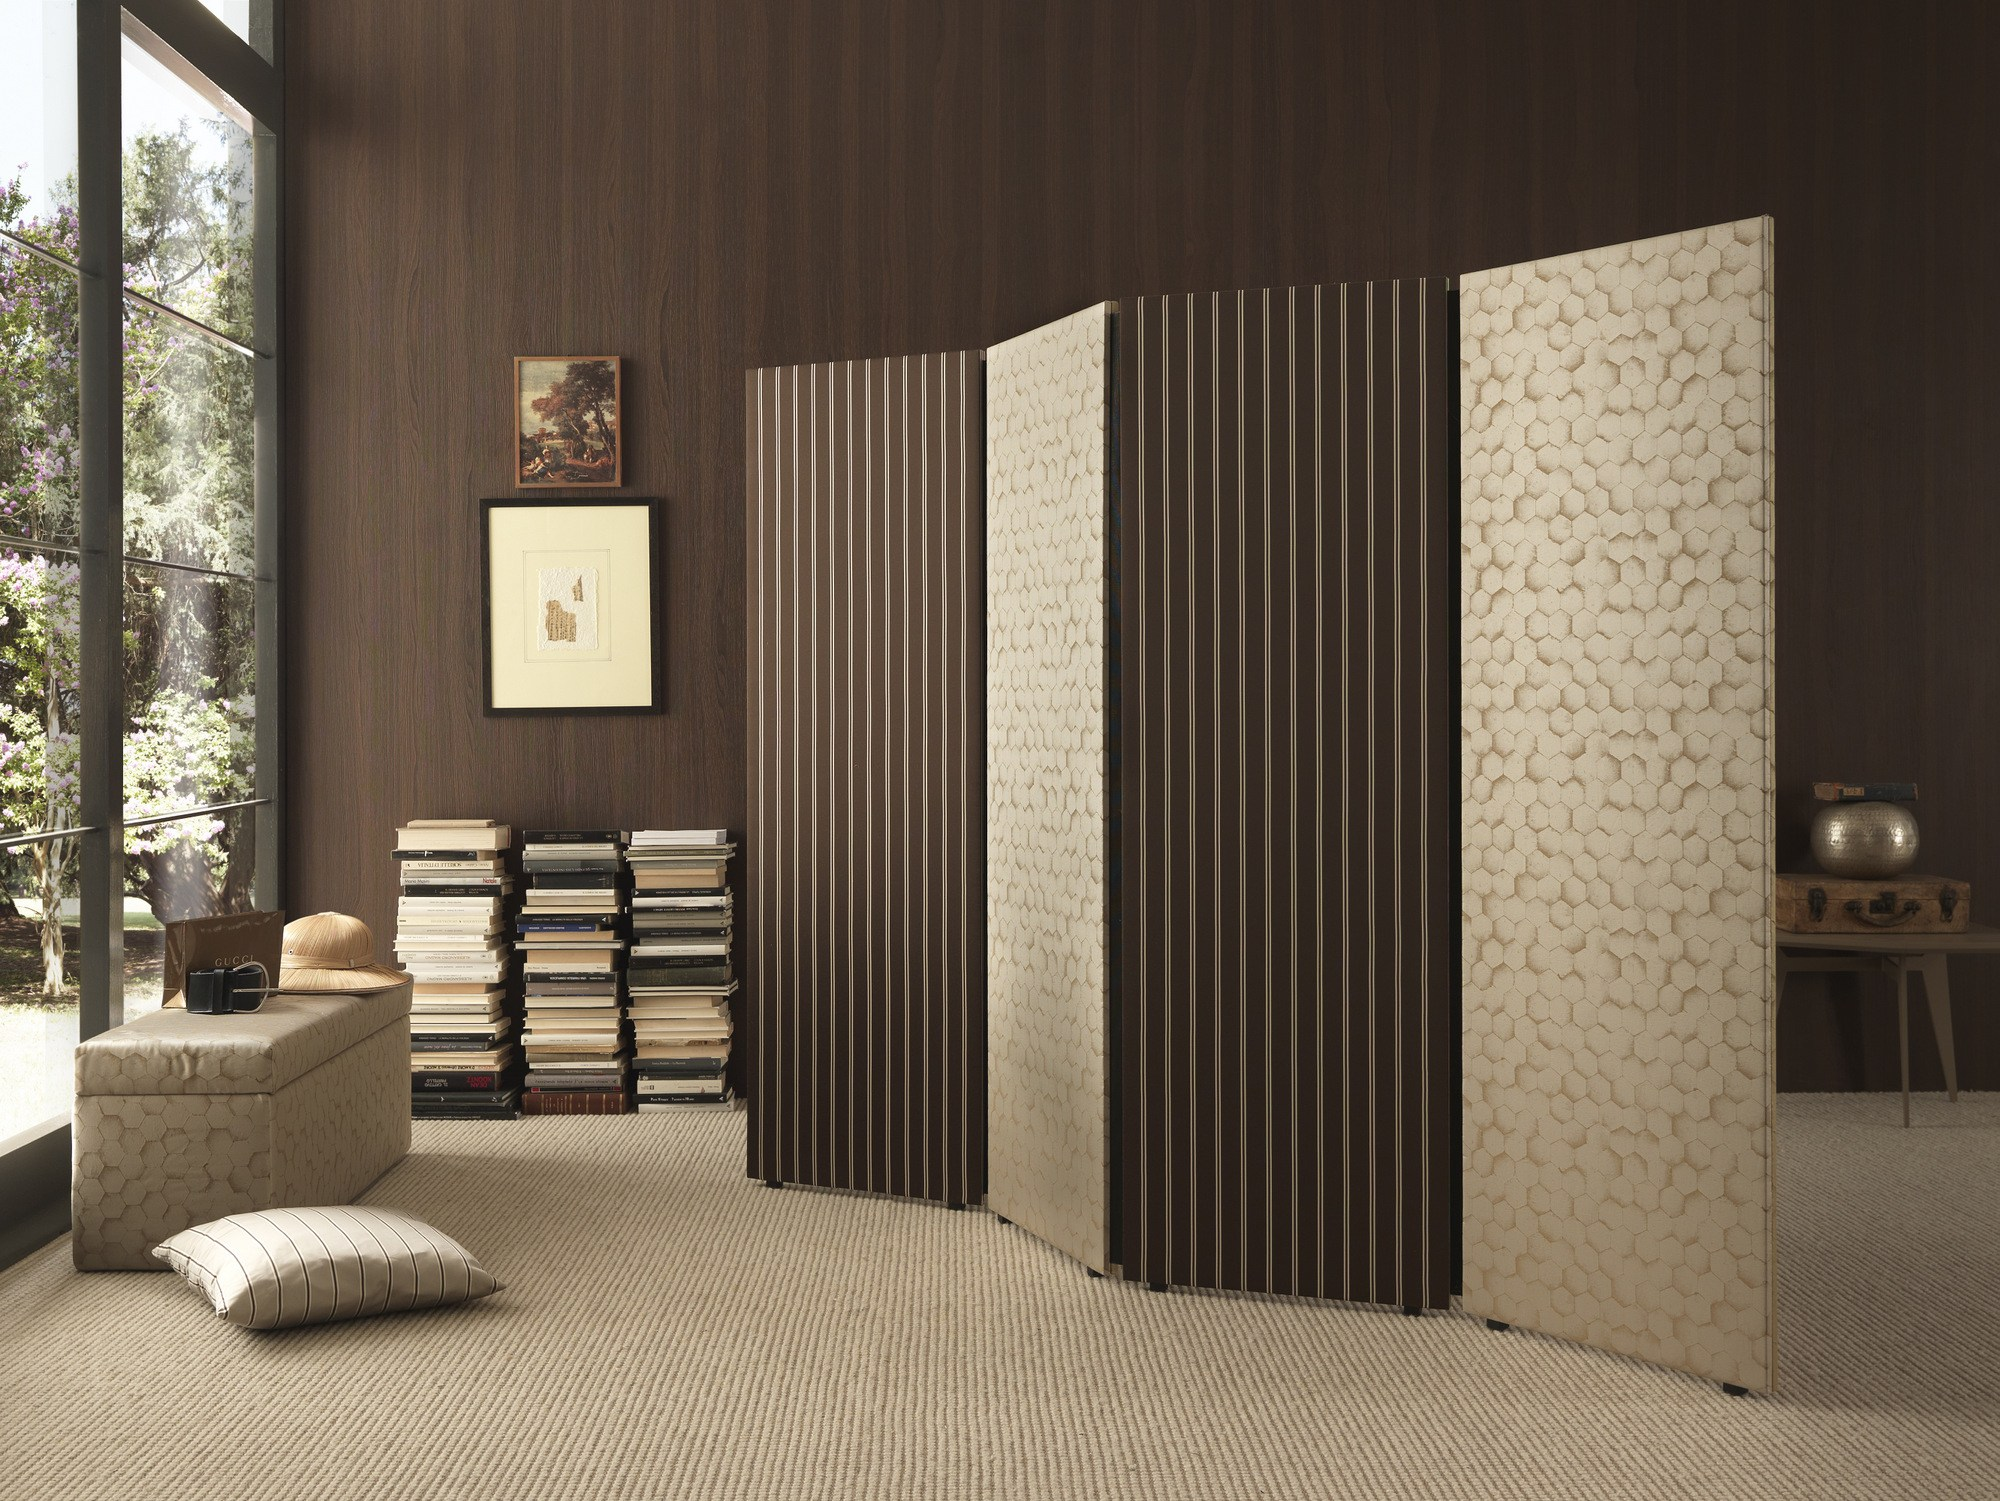 ARCHIPRODUCTS-C